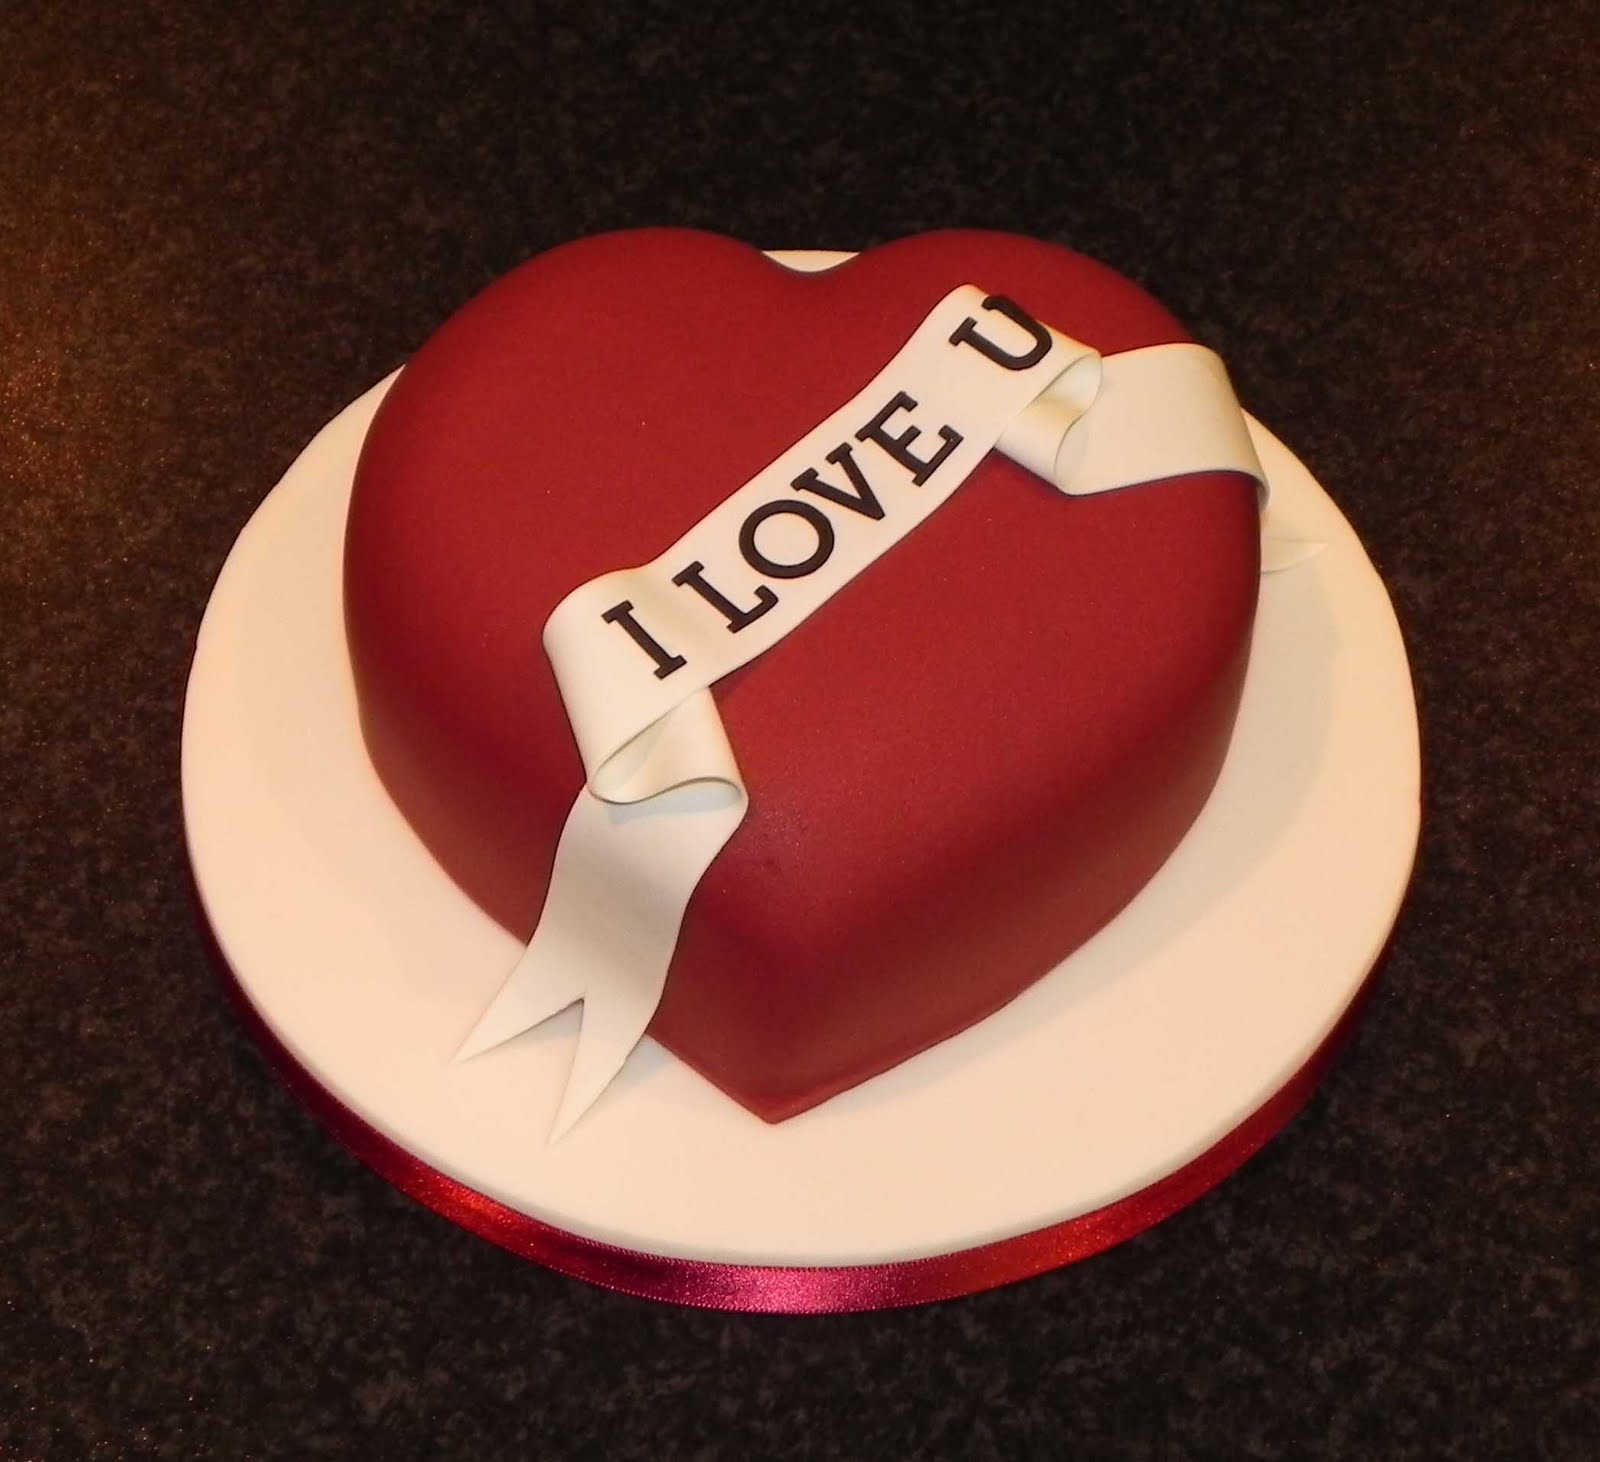 9 Photos of Valentine's Day Cakes With Hearts